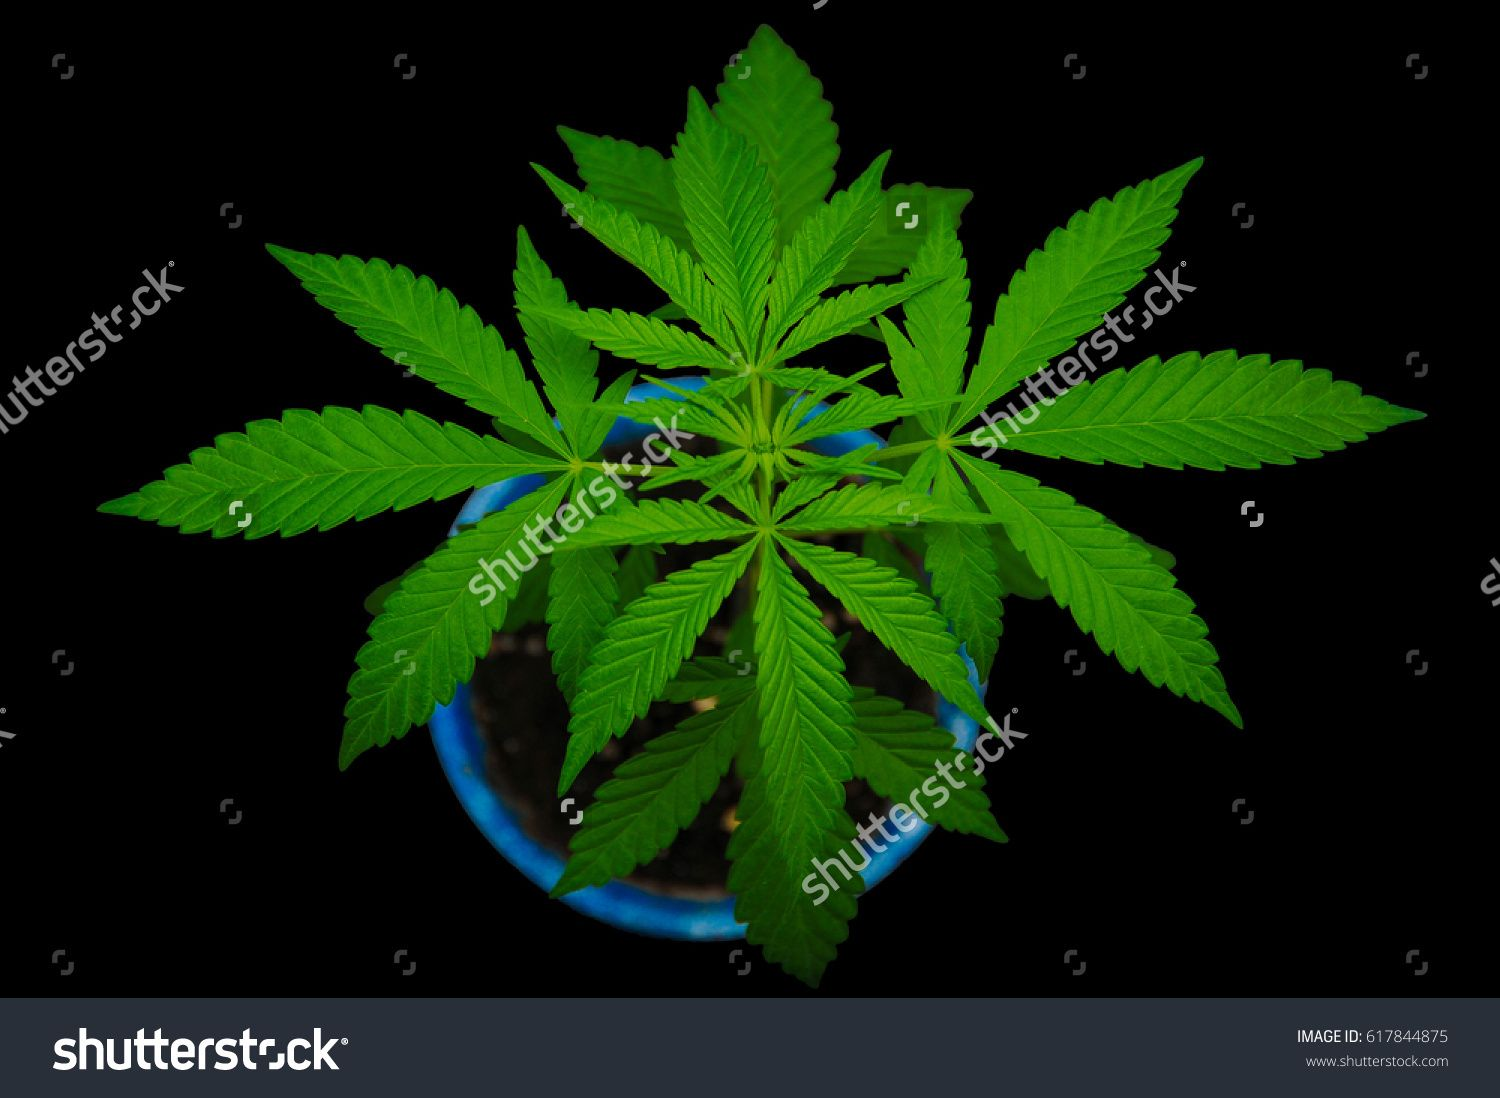 young marijuana indoor plant growing in blue pot isolated on  black background